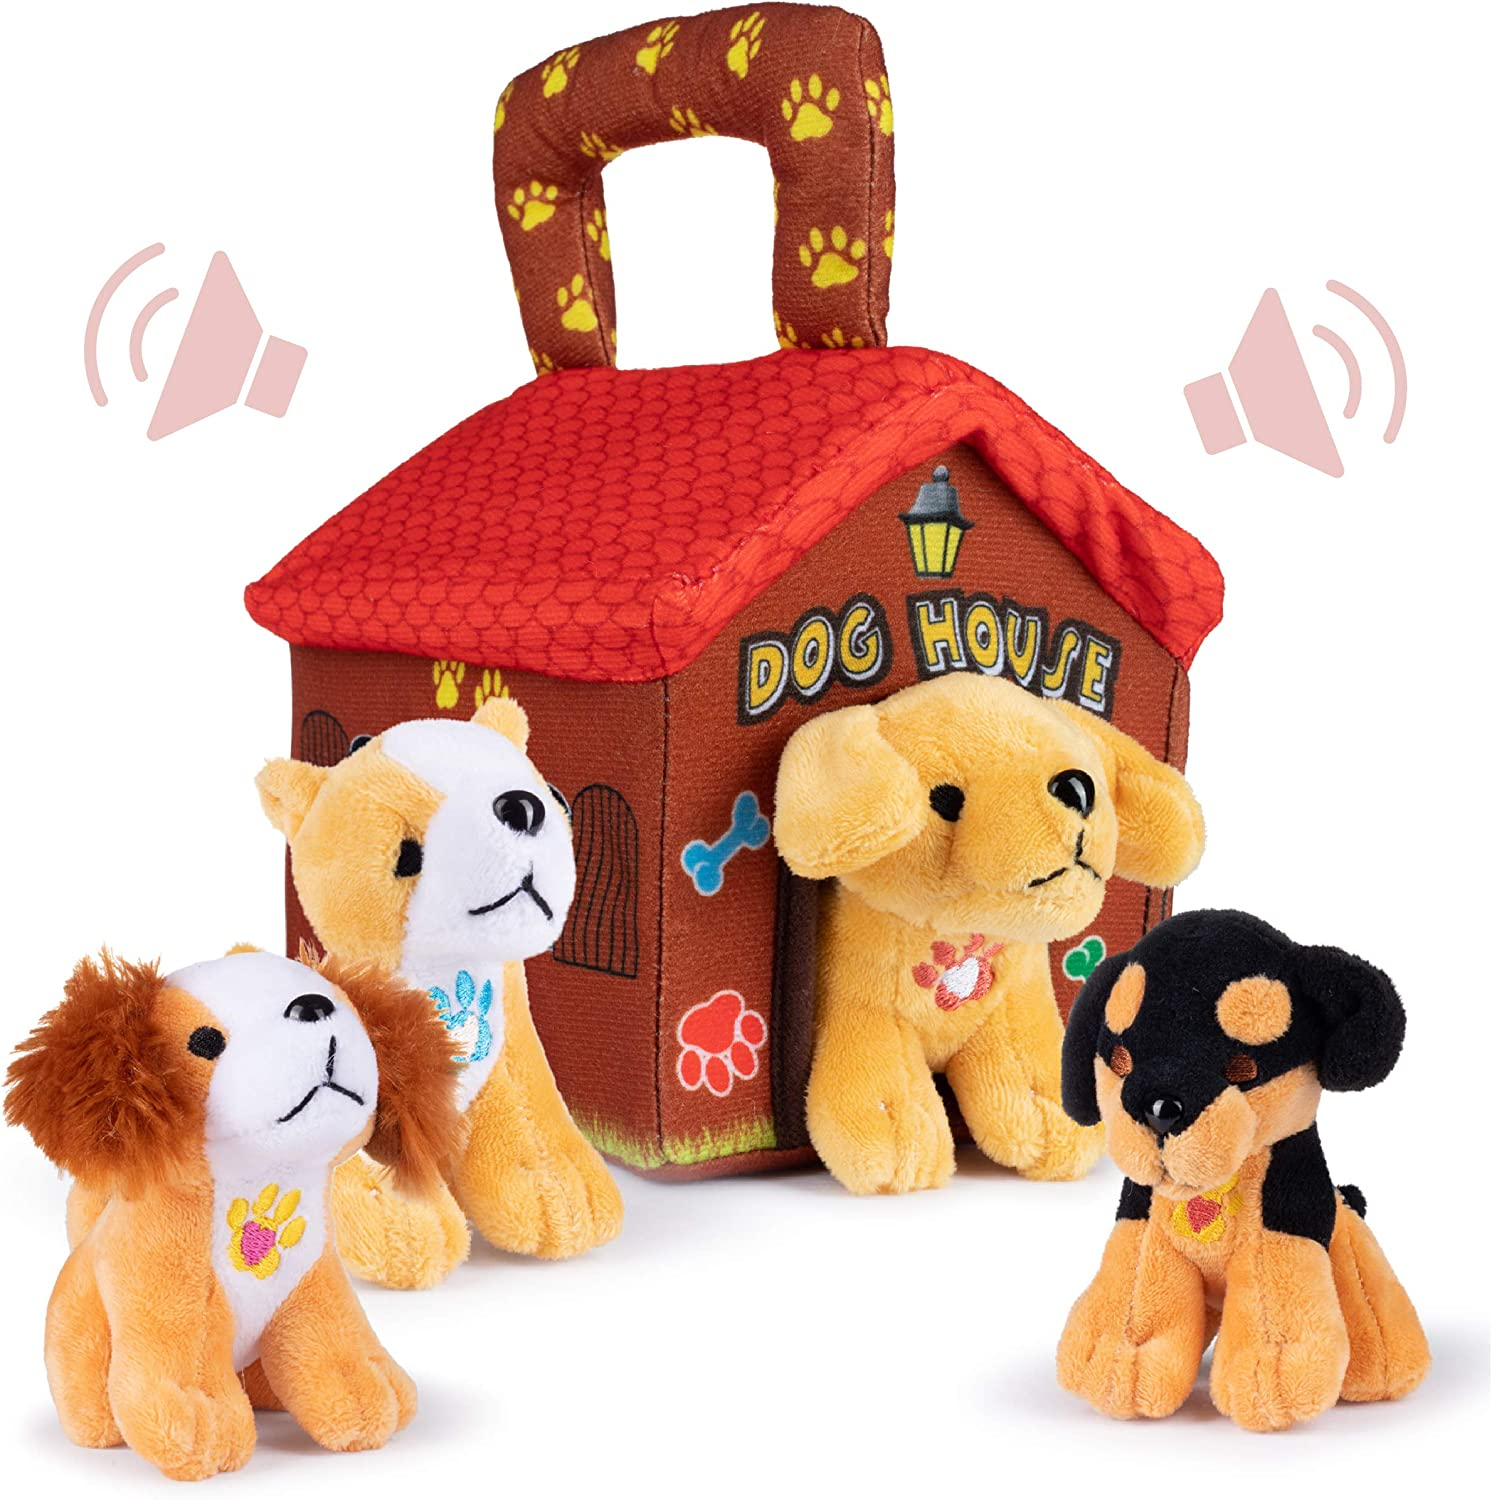 Plush Creations Plush Dog House Carrier with 4 Soft and Cuddly, Talking and Barking, Stuffed Plush Dogs. Excellent Interactive and Educational Plush